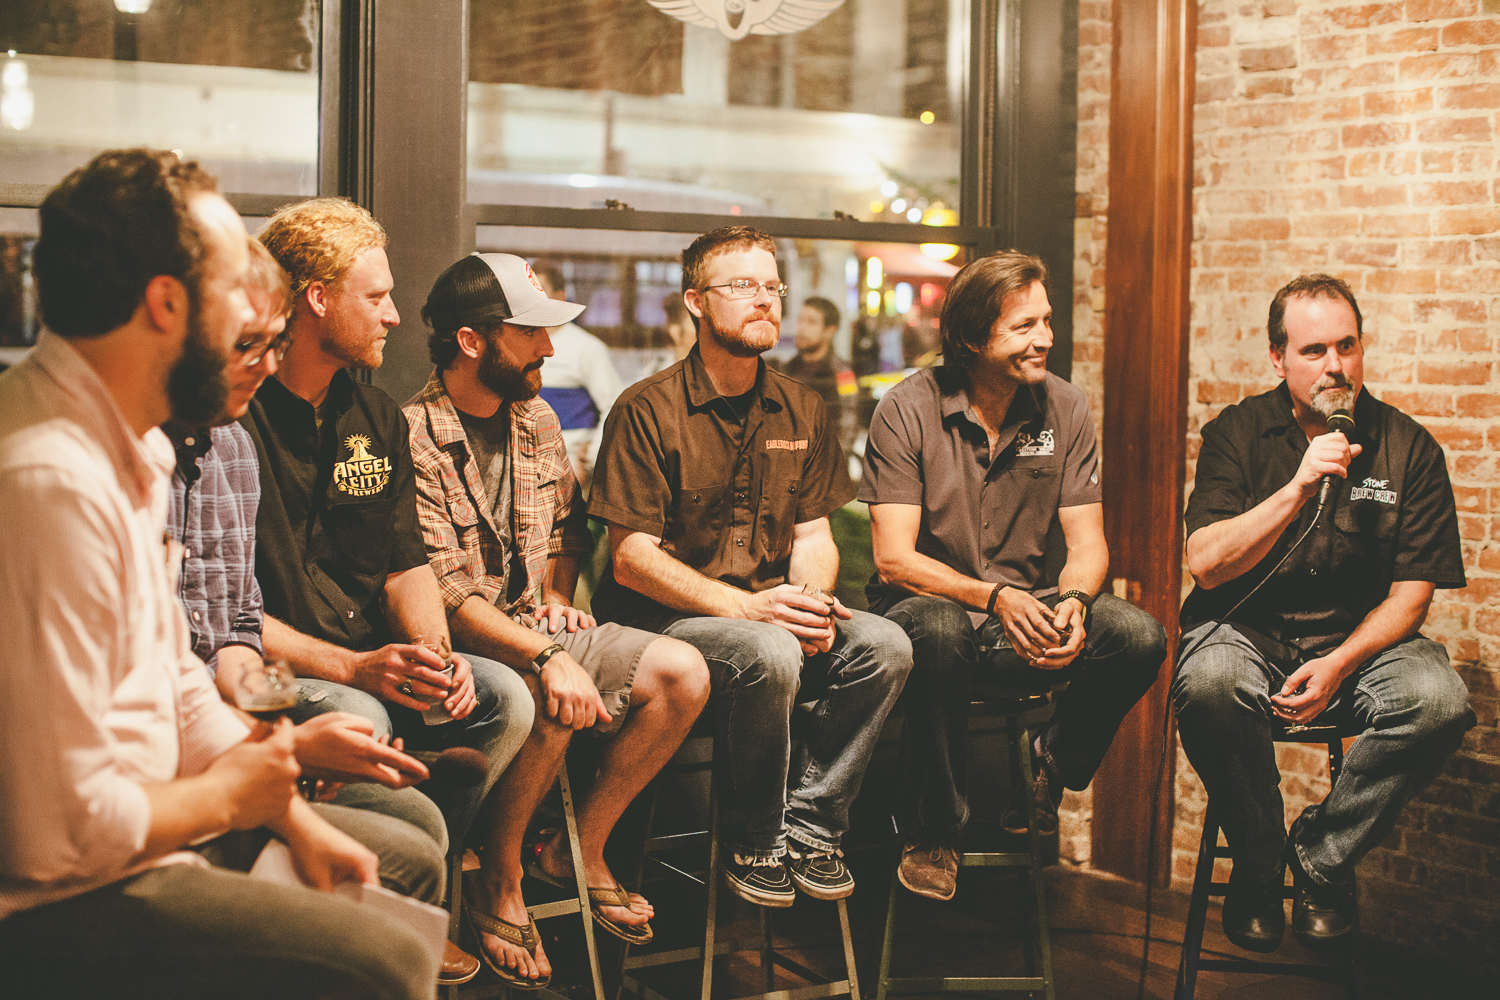 Left to right: Michael Kiser, Good Beer Hunting | John Barley, Solemn Oath | Dieter Foerstner, Angel City | Matt Webster, Lost Abbey/Port | Jereme Raub, Eagle Rock | David Walker, Firestone Walker | Mitch Steele, Stone